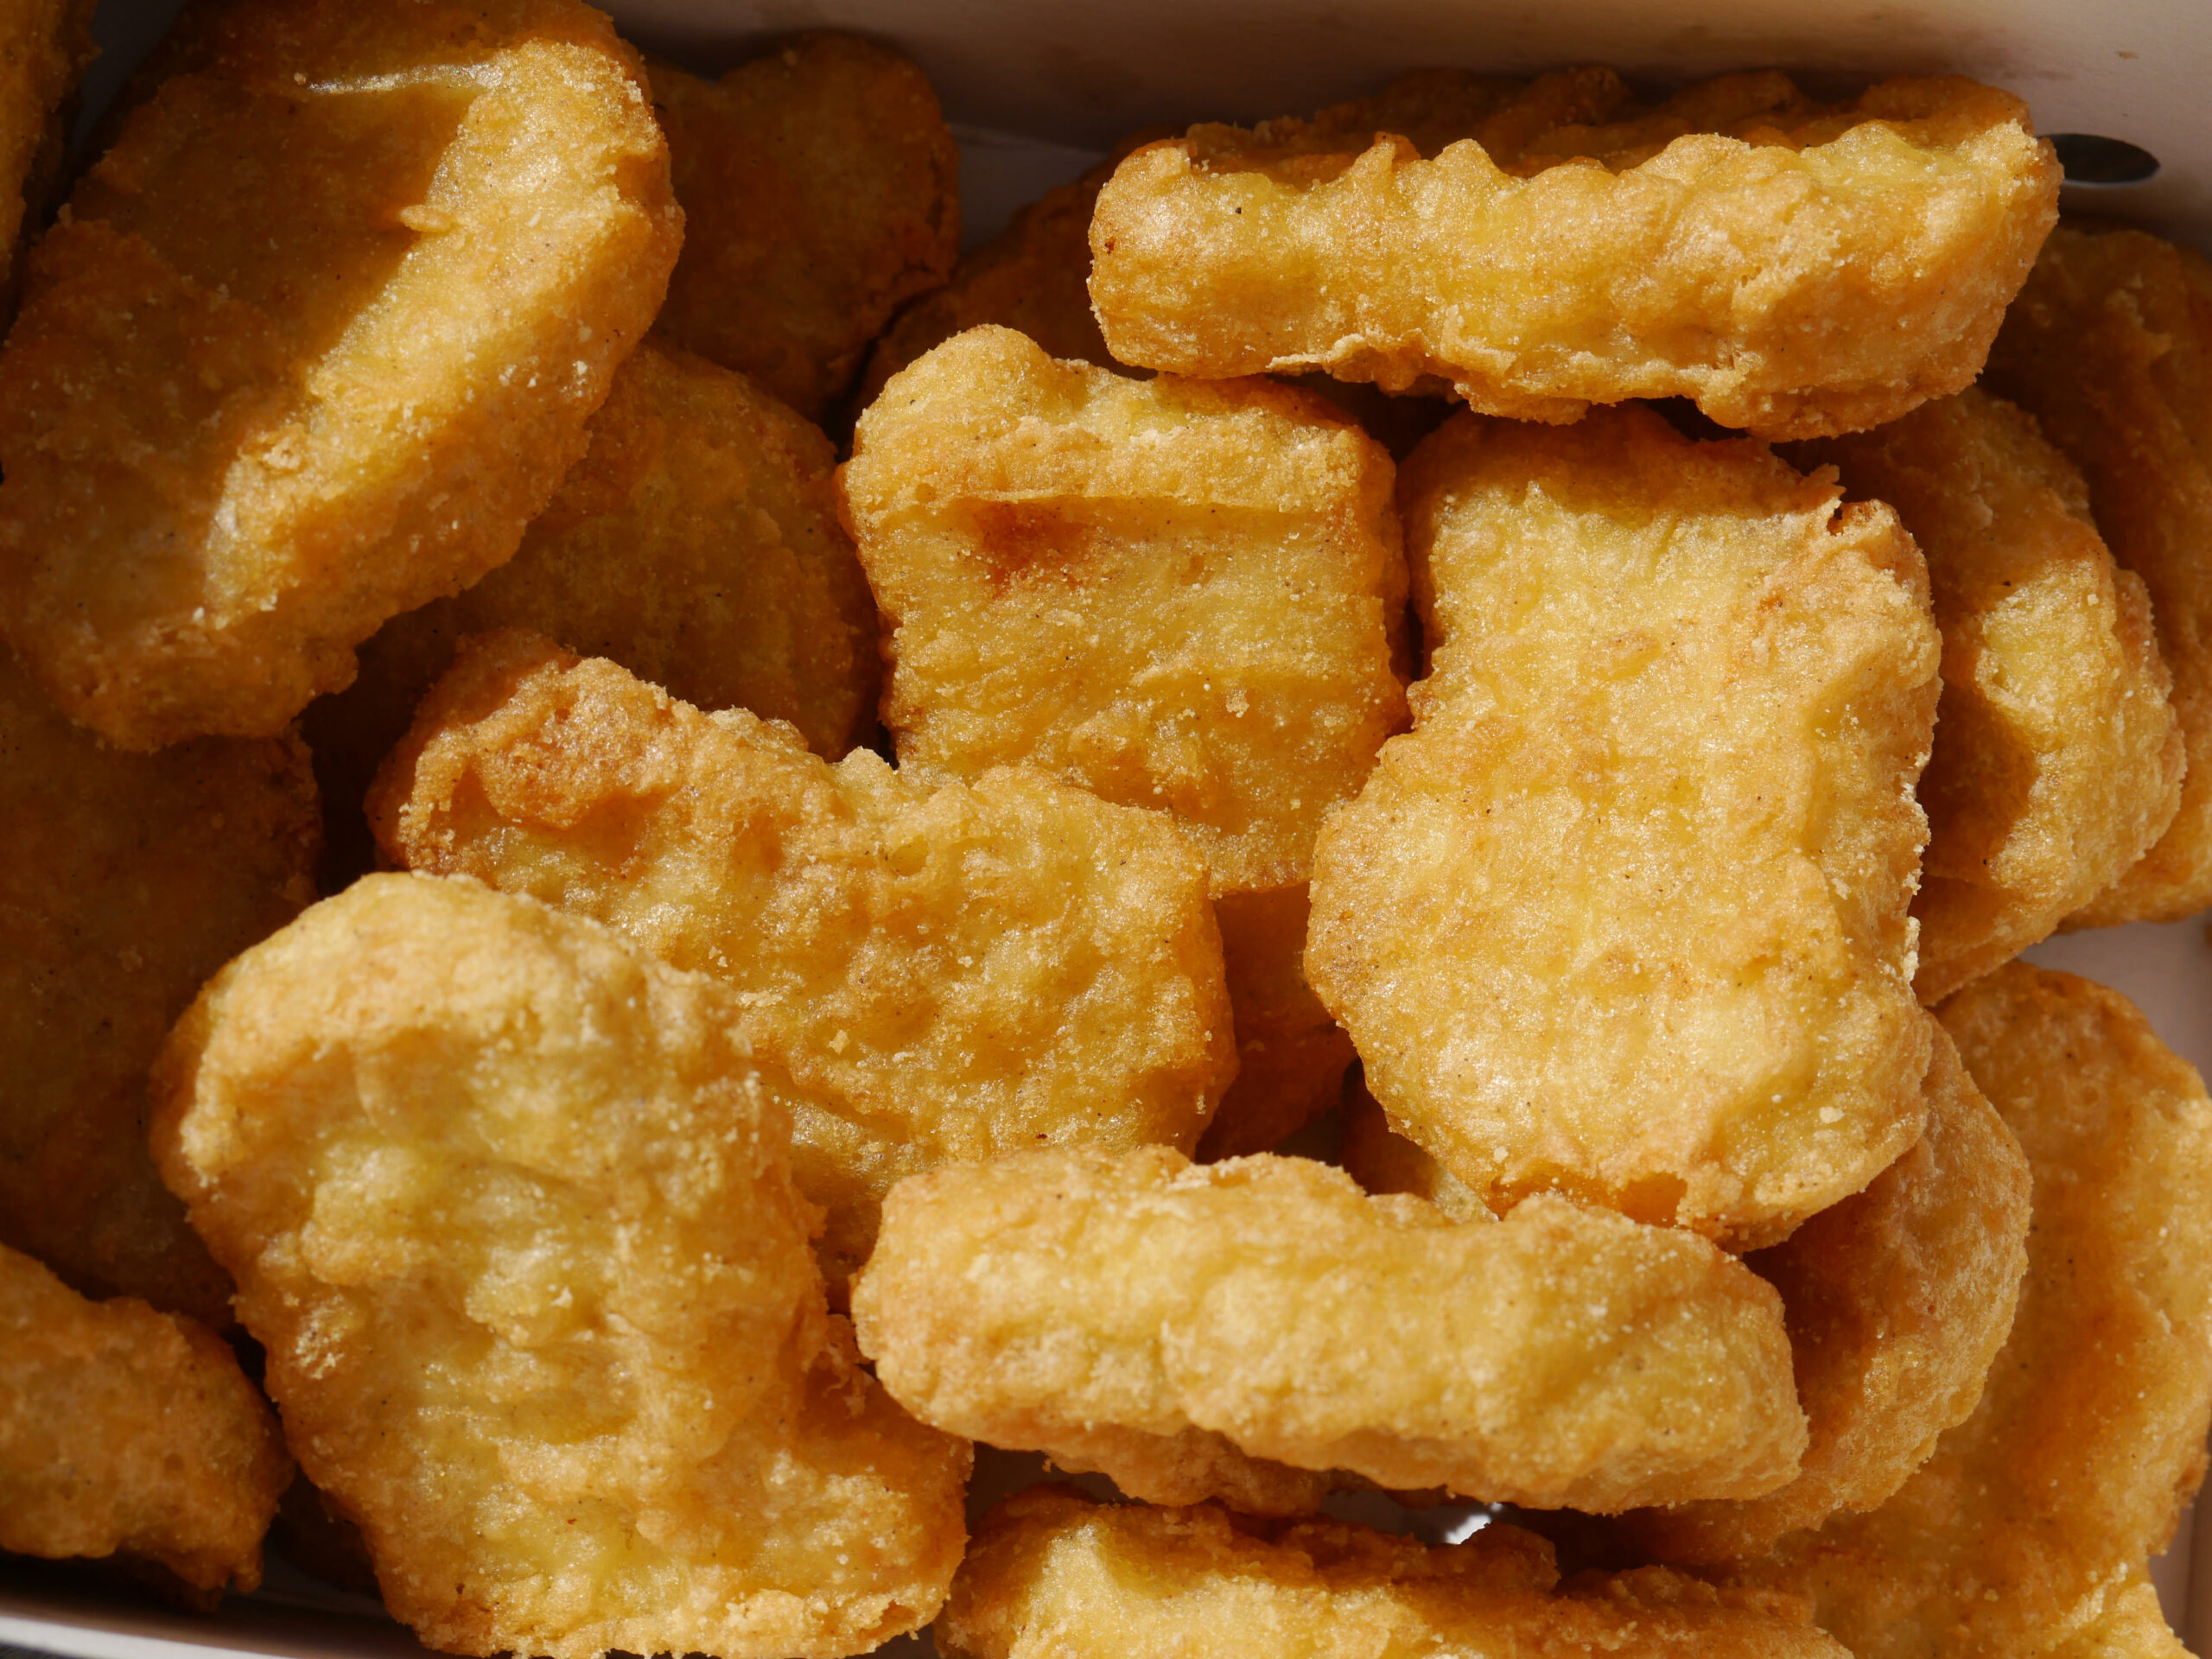 how are chicken McNuggets made